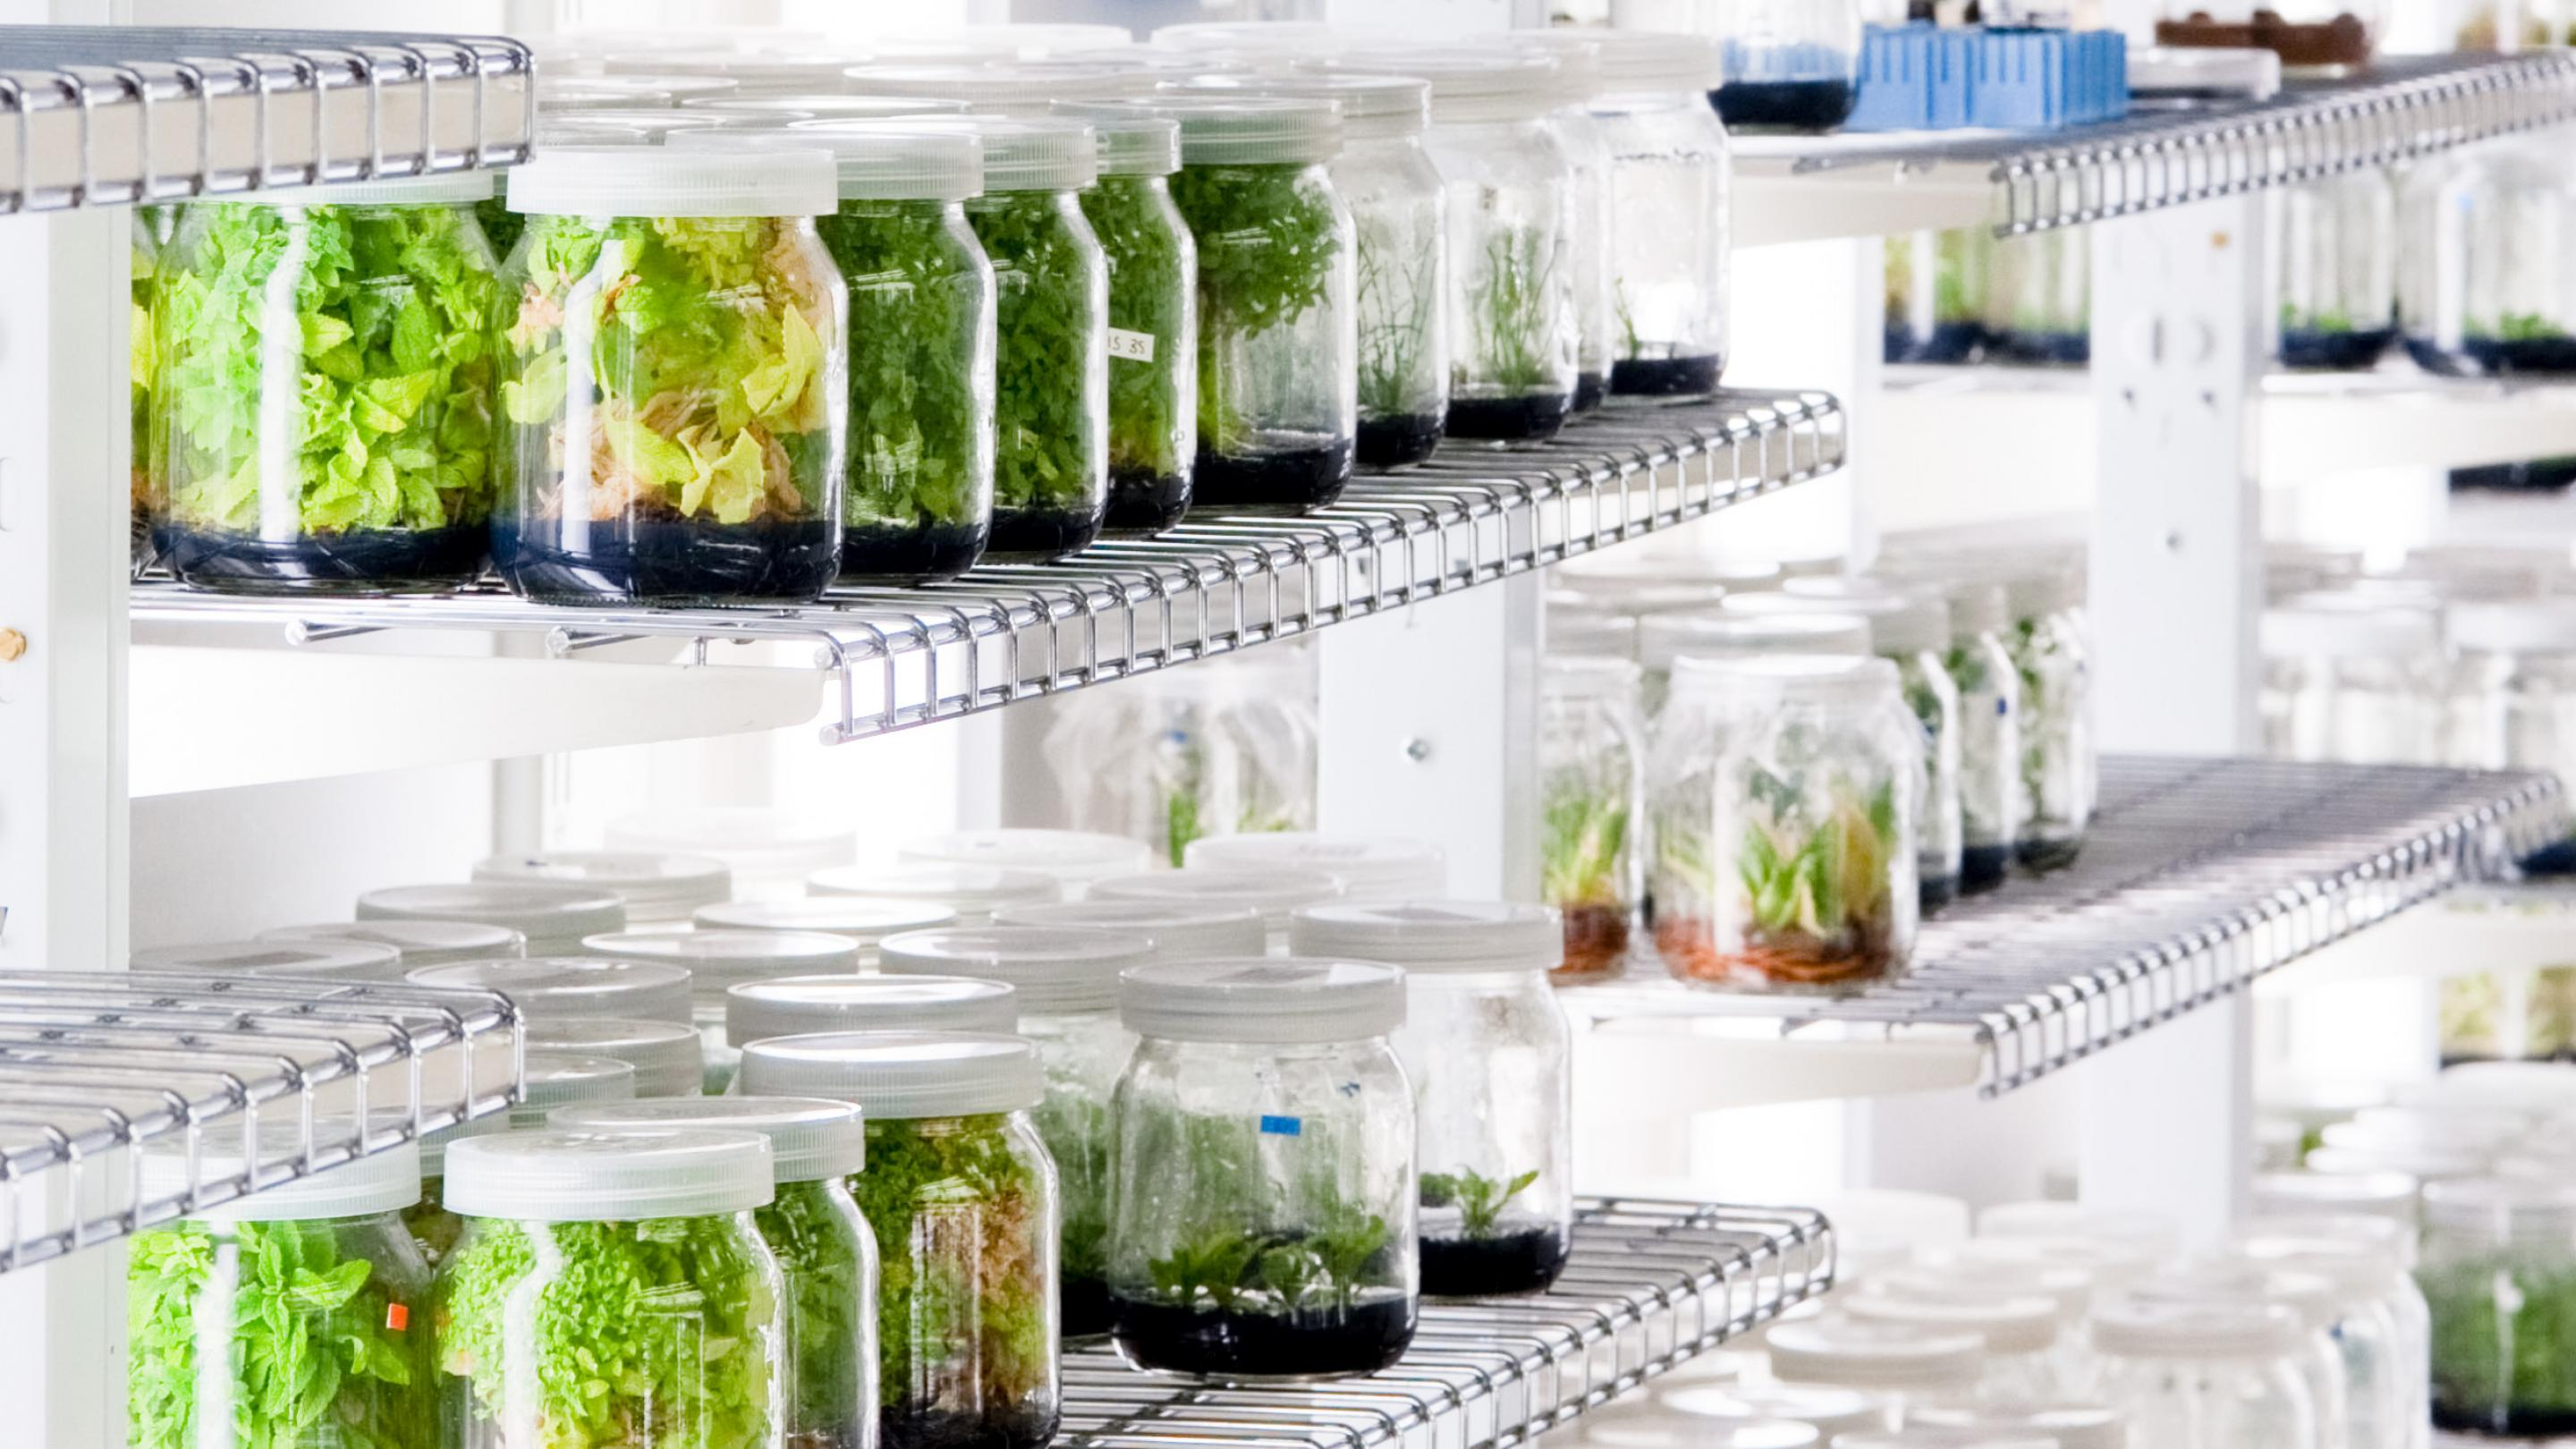 Image showing The In Vitro Collection at Kew consisting of plant specimens and fungi that have been cultured in artificial growing media.